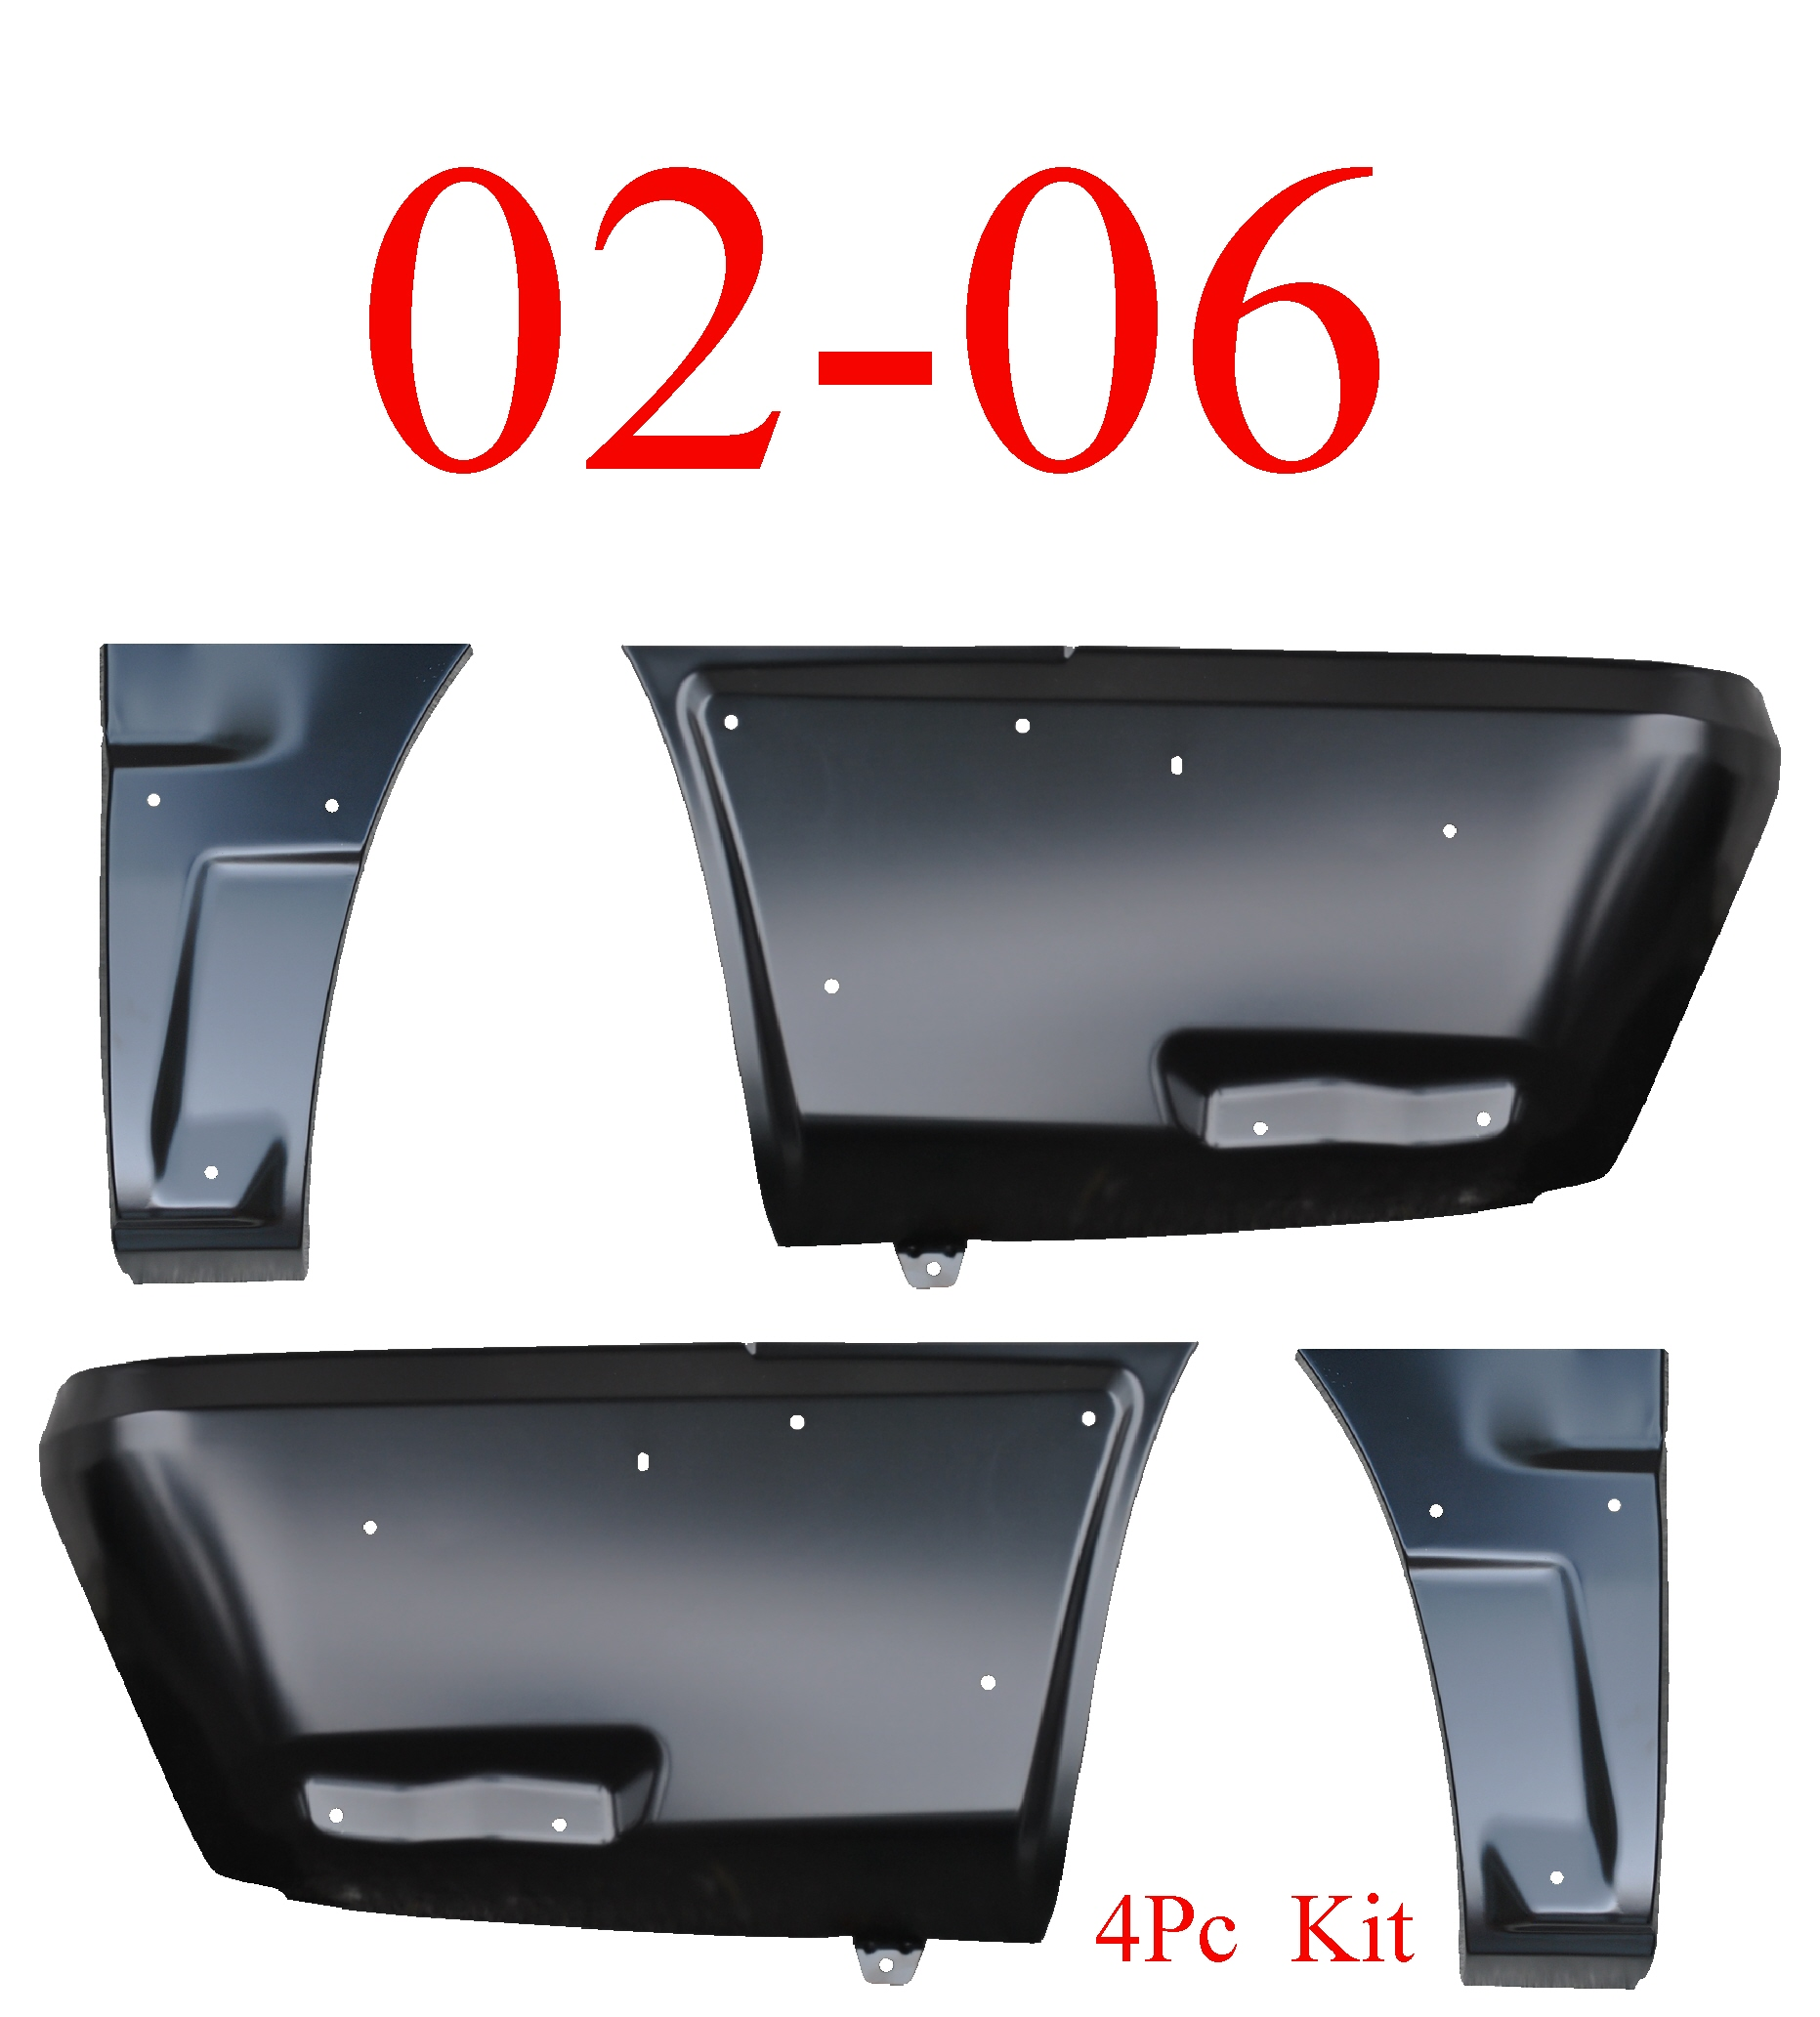 02-06 Chevy Avalanche 4Pc Front & Rear Lower Quarter W/Cladding